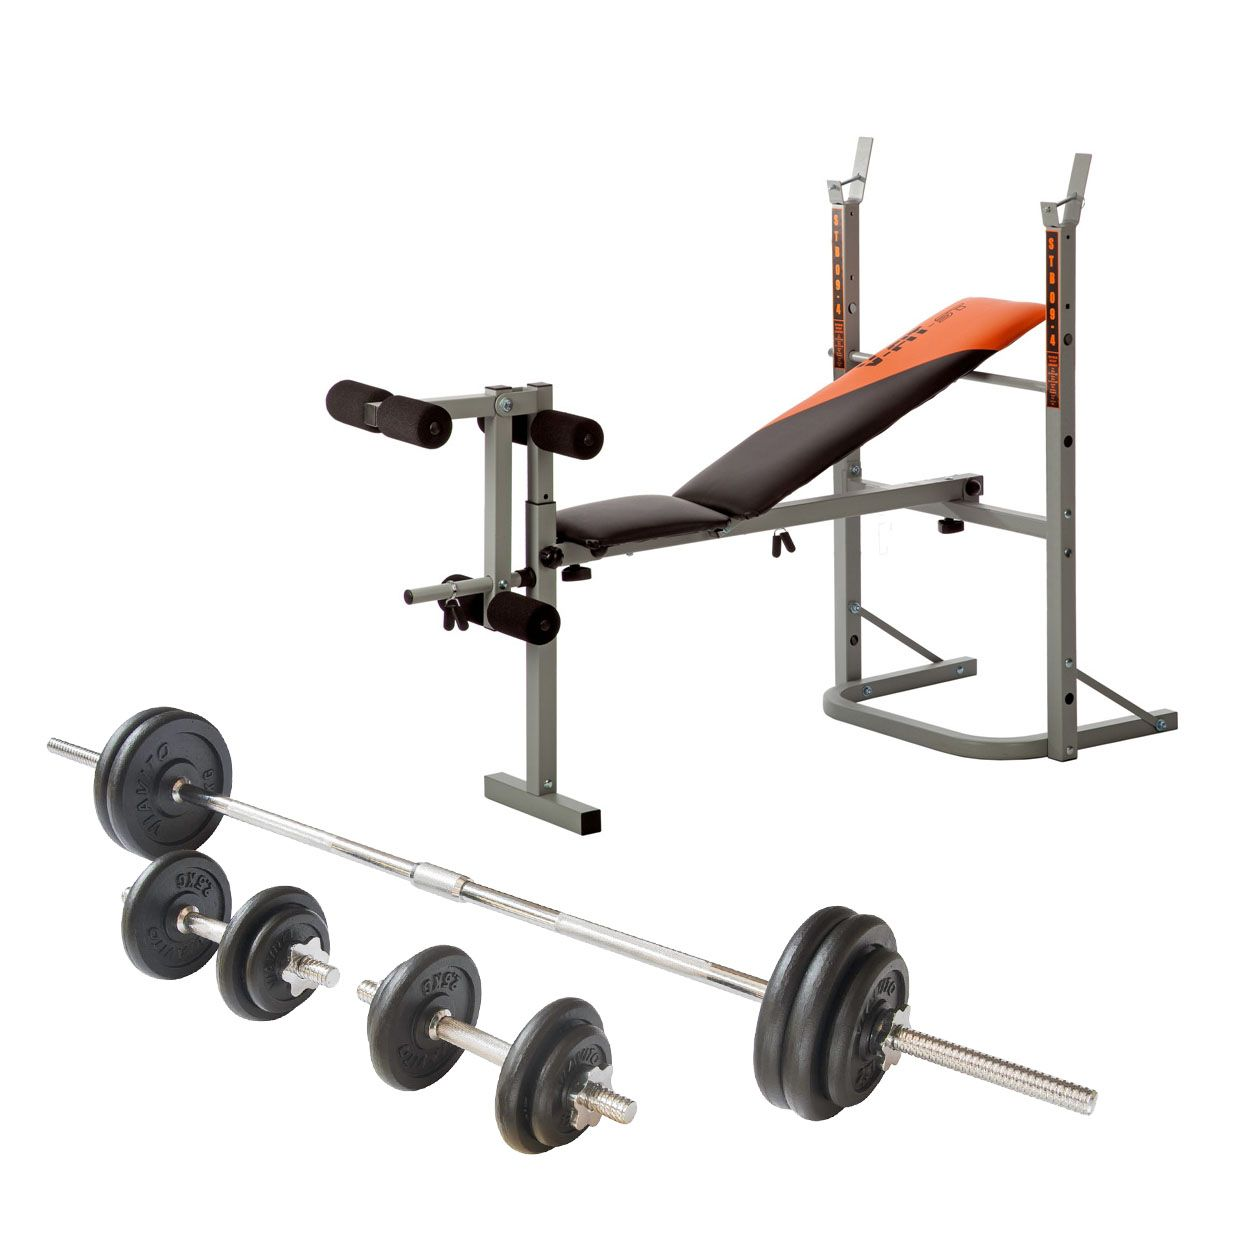 V fit stb09 1 folding weight bench with 50kg cast iron weight set Weight set bench